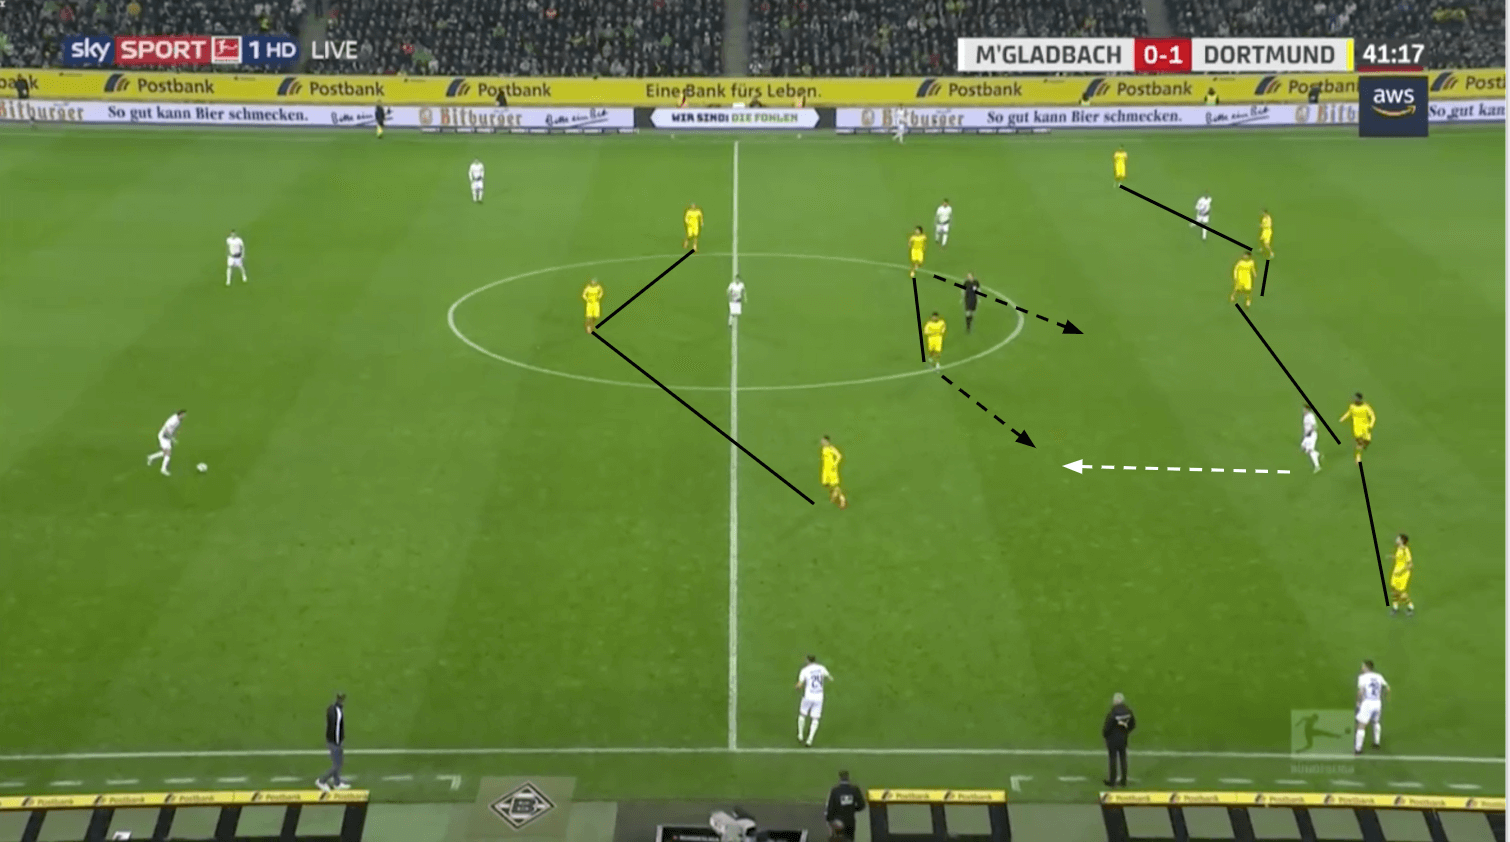 Emre Can at Borussia Dortmund 2020 - scout report tactics